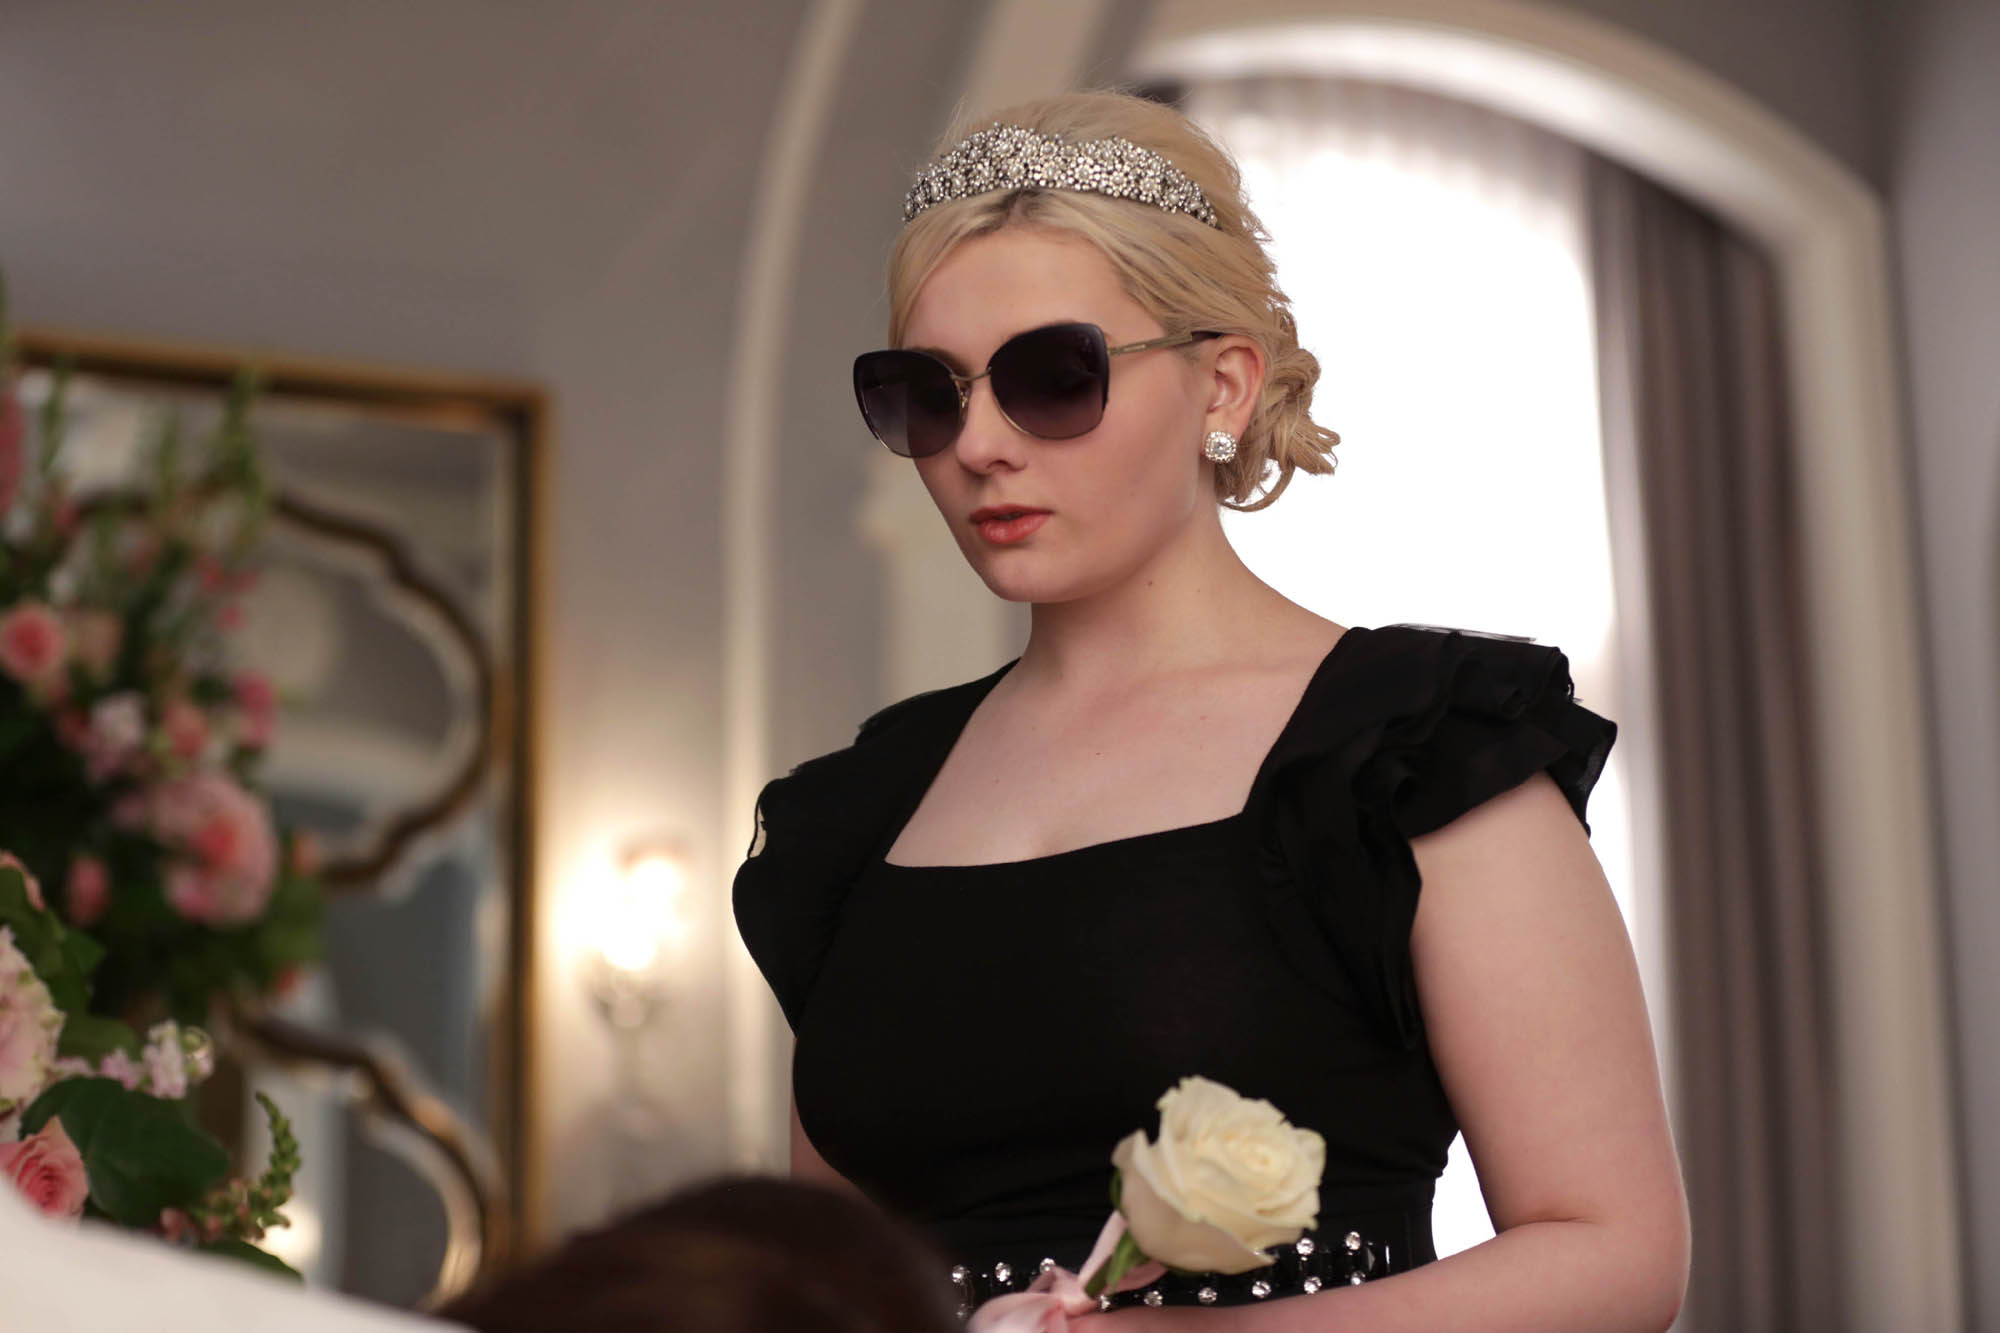 d0c9705725b Abigail Breslin images Abigail Breslin as Chanel 5   Libby Putney in Scream  Queens -  Beware of Young Girls  HD wallpaper and background photos